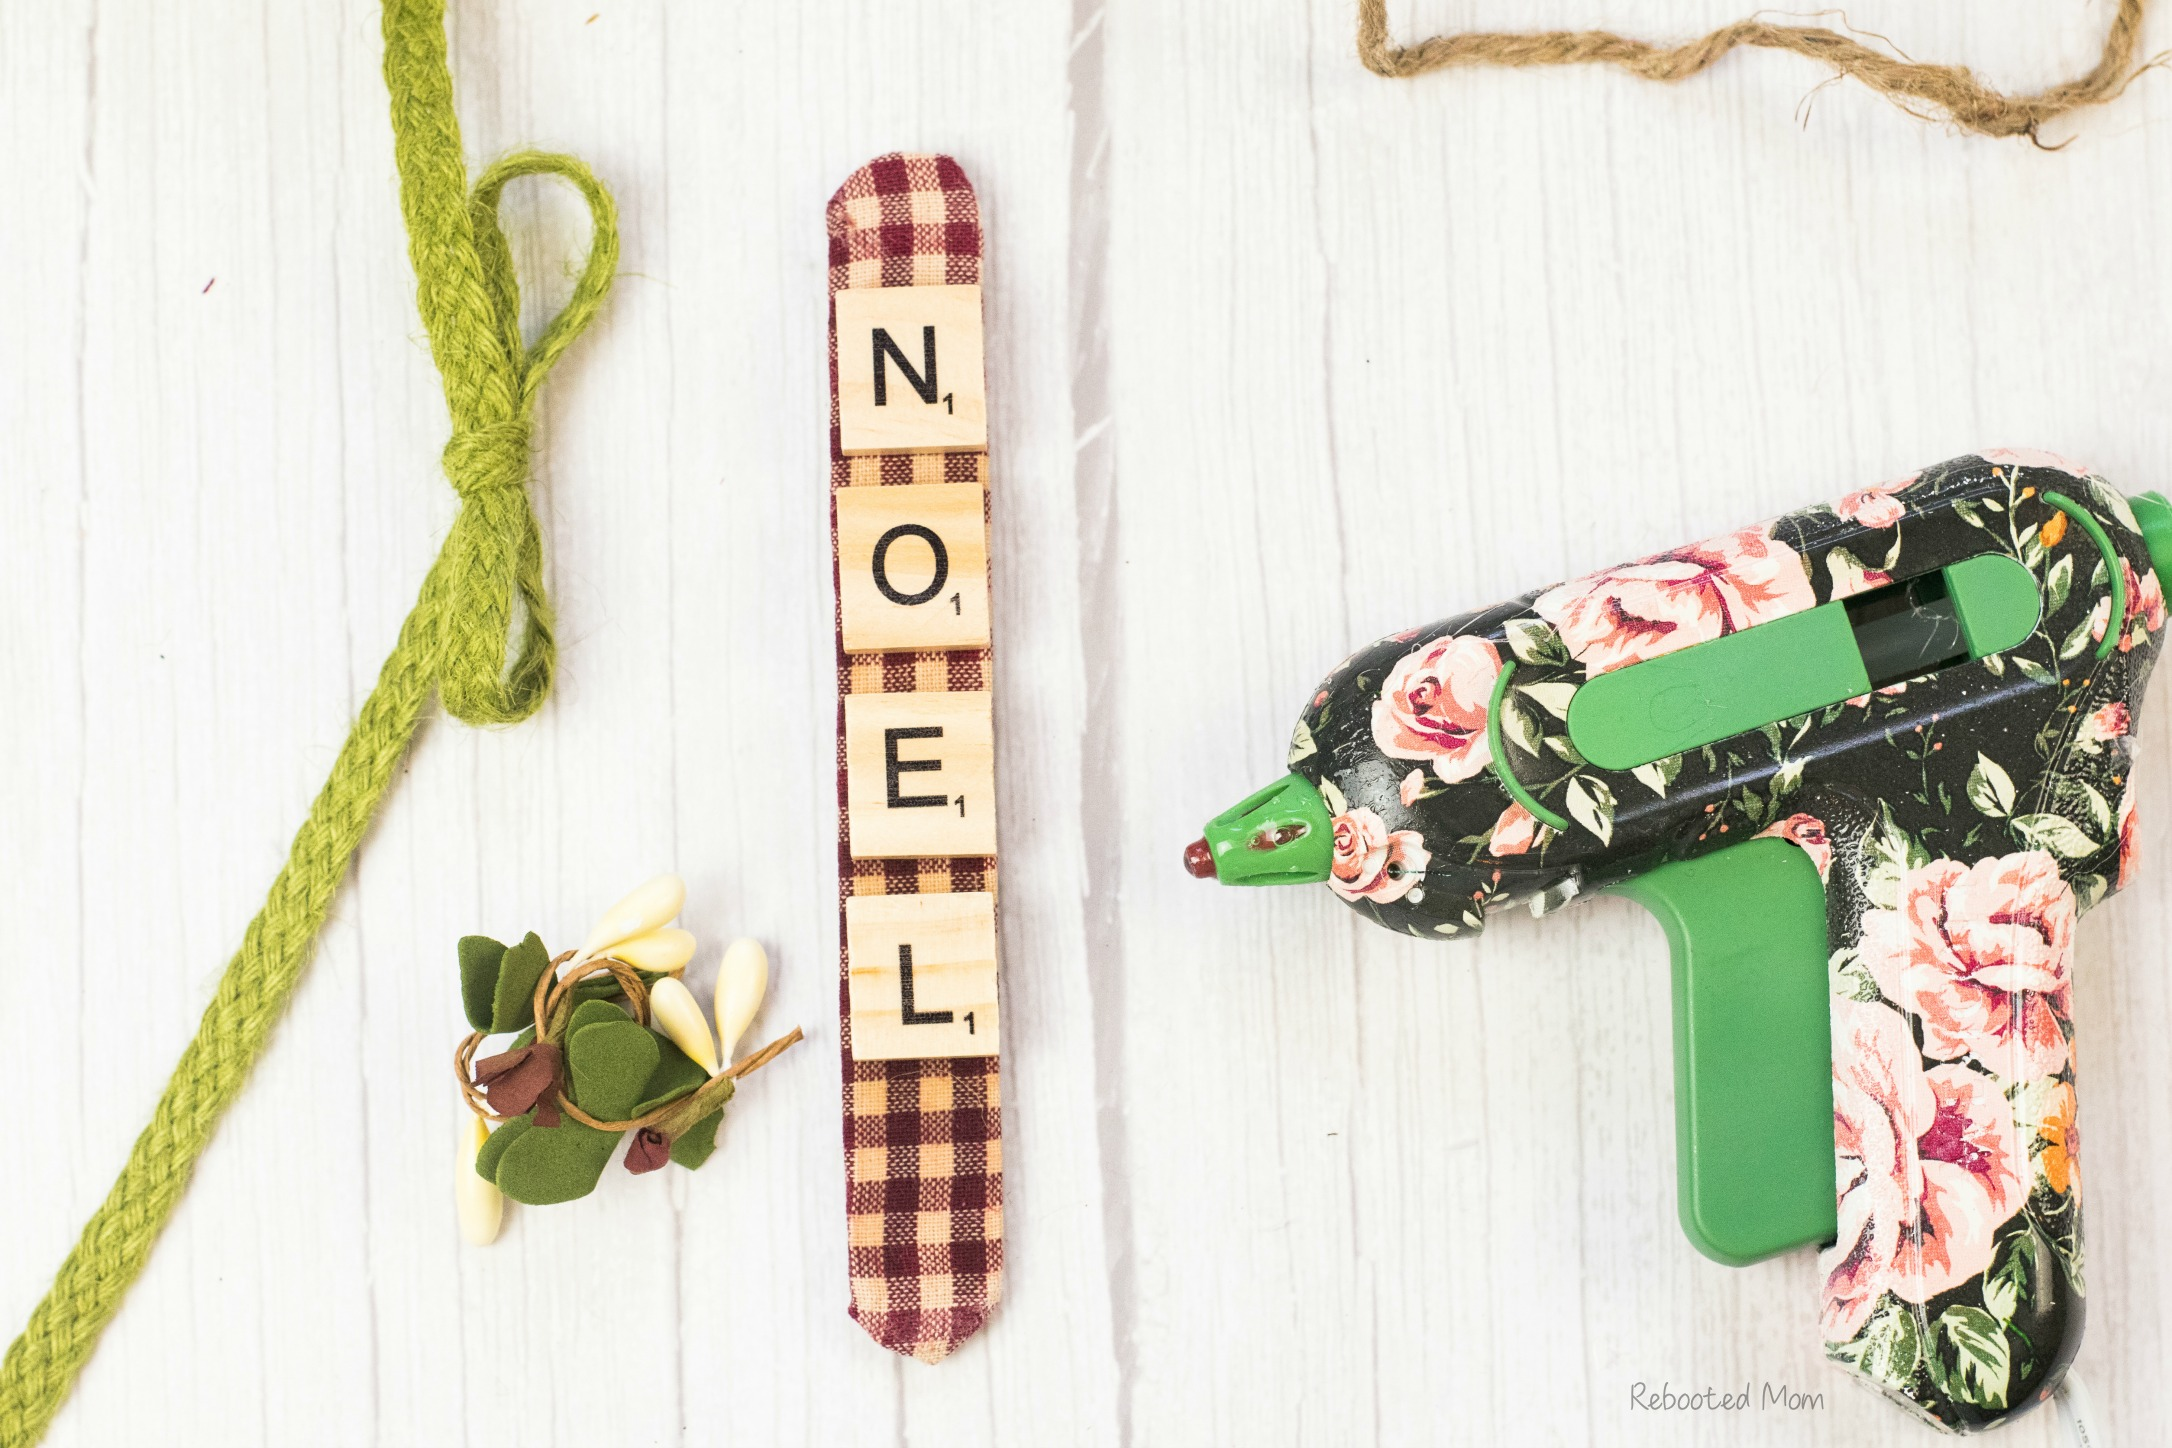 Scrabble Tile Ornament DIY